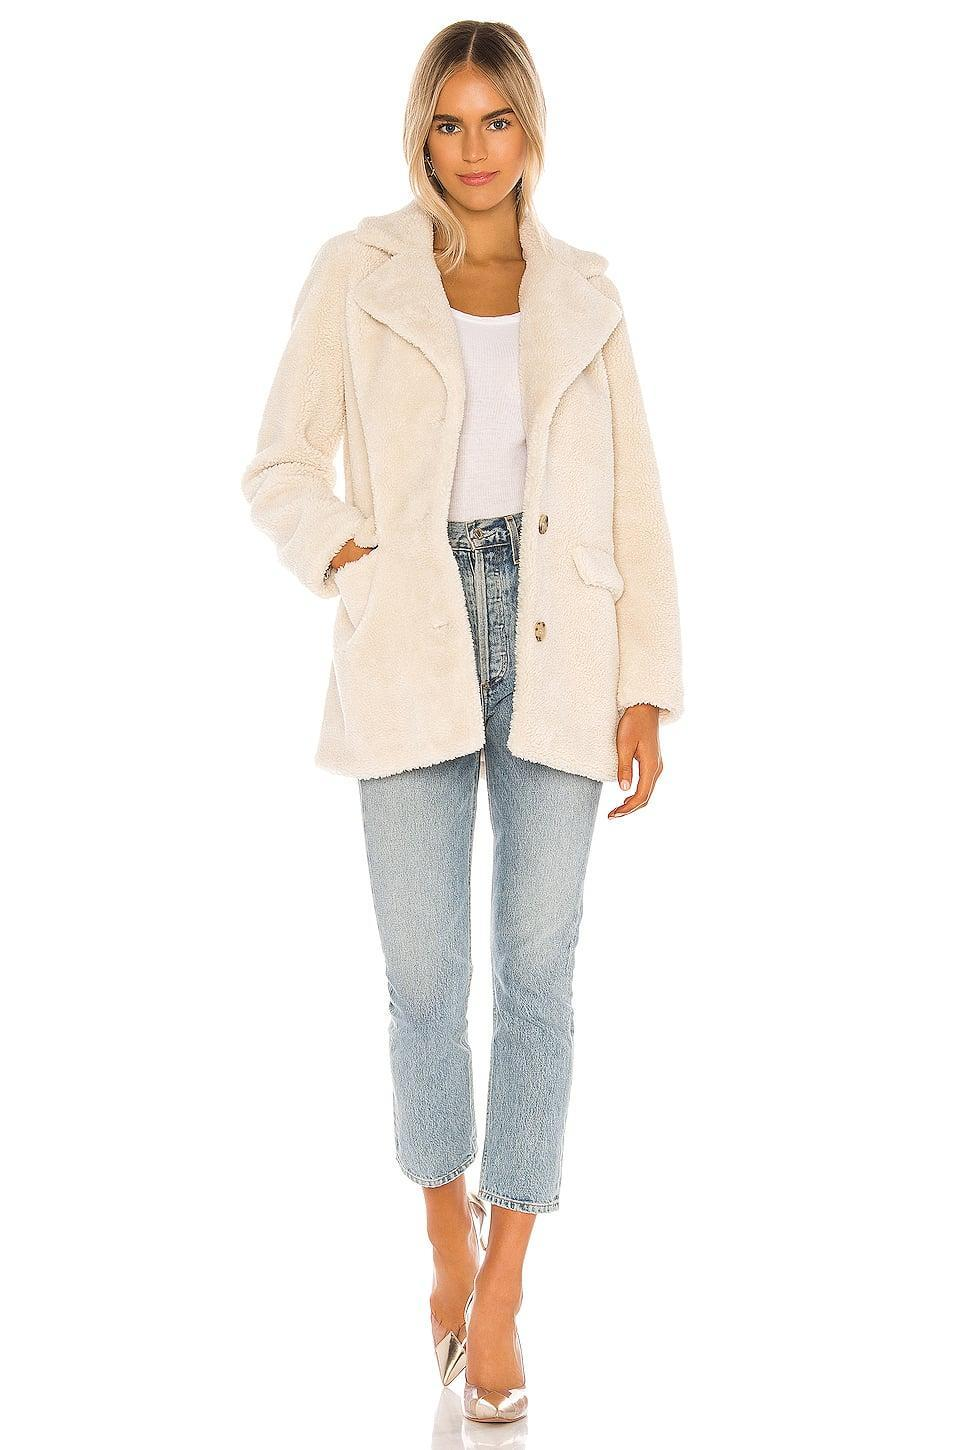 <p>This cozy <span>Camila Coelho Katarina Coat</span> ($208) is perfect for winter.</p>